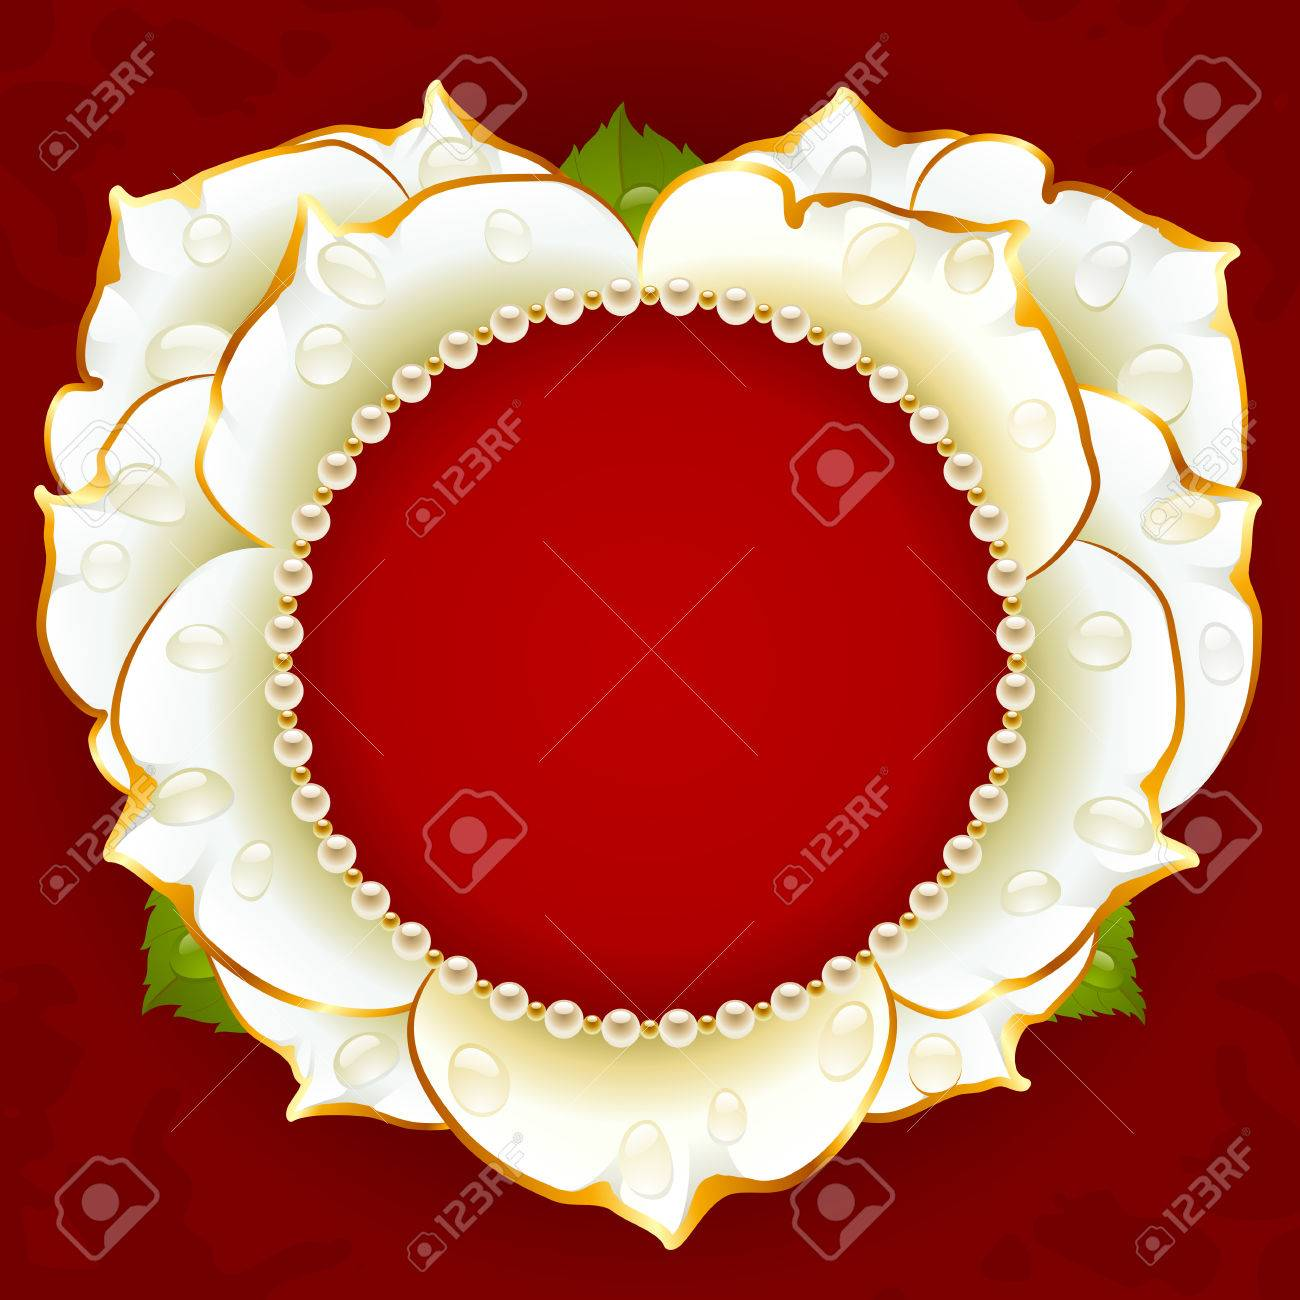 a16325ce5214 Vector White Rose Heart Frame With Pearl Necklace Royalty Free ...